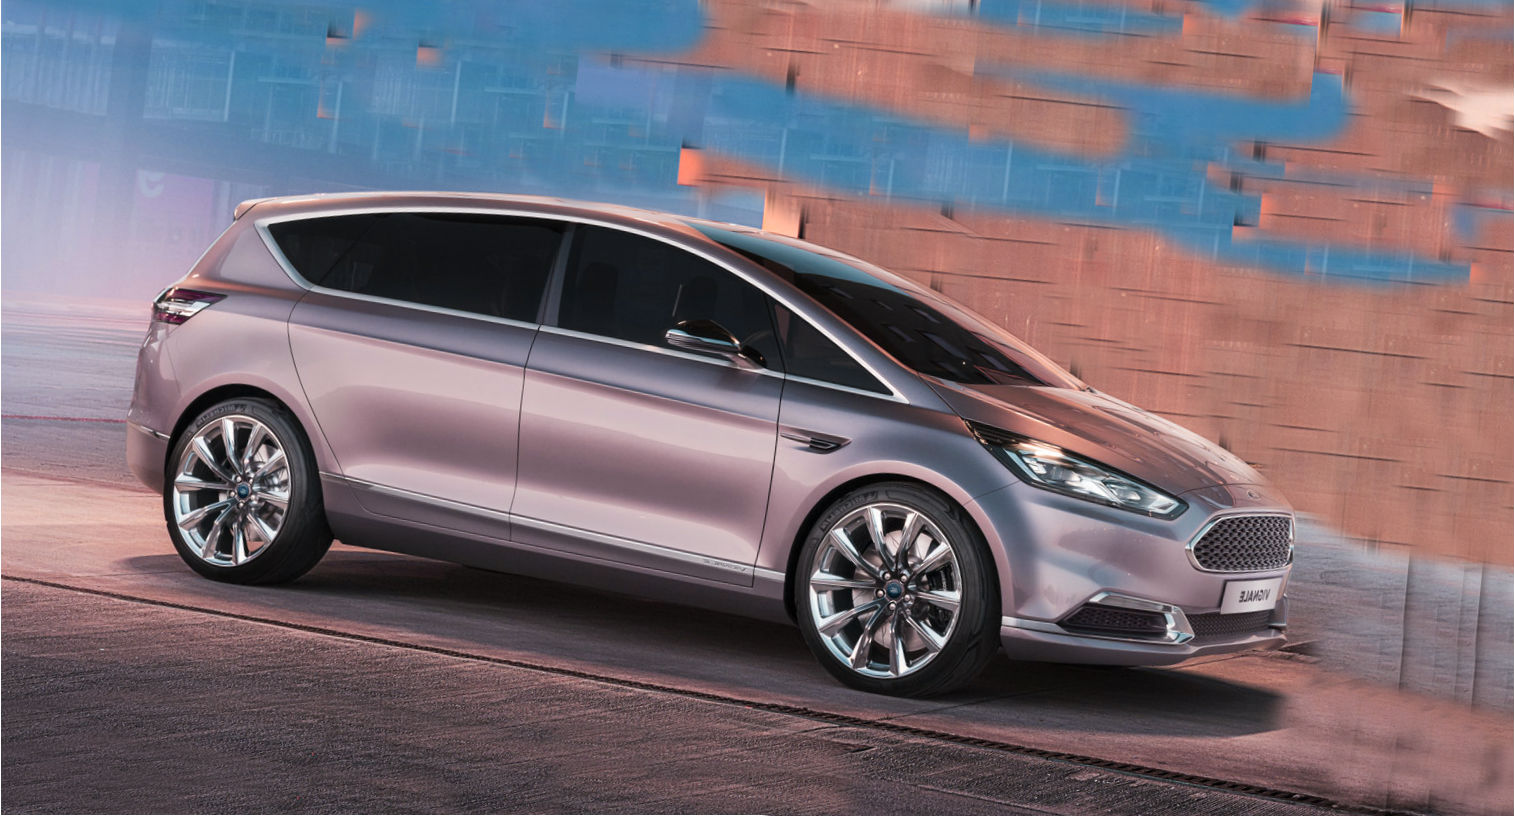 ford s max vignale concept 2014 reviews ford s max vignale concept 2014 car reviews. Black Bedroom Furniture Sets. Home Design Ideas